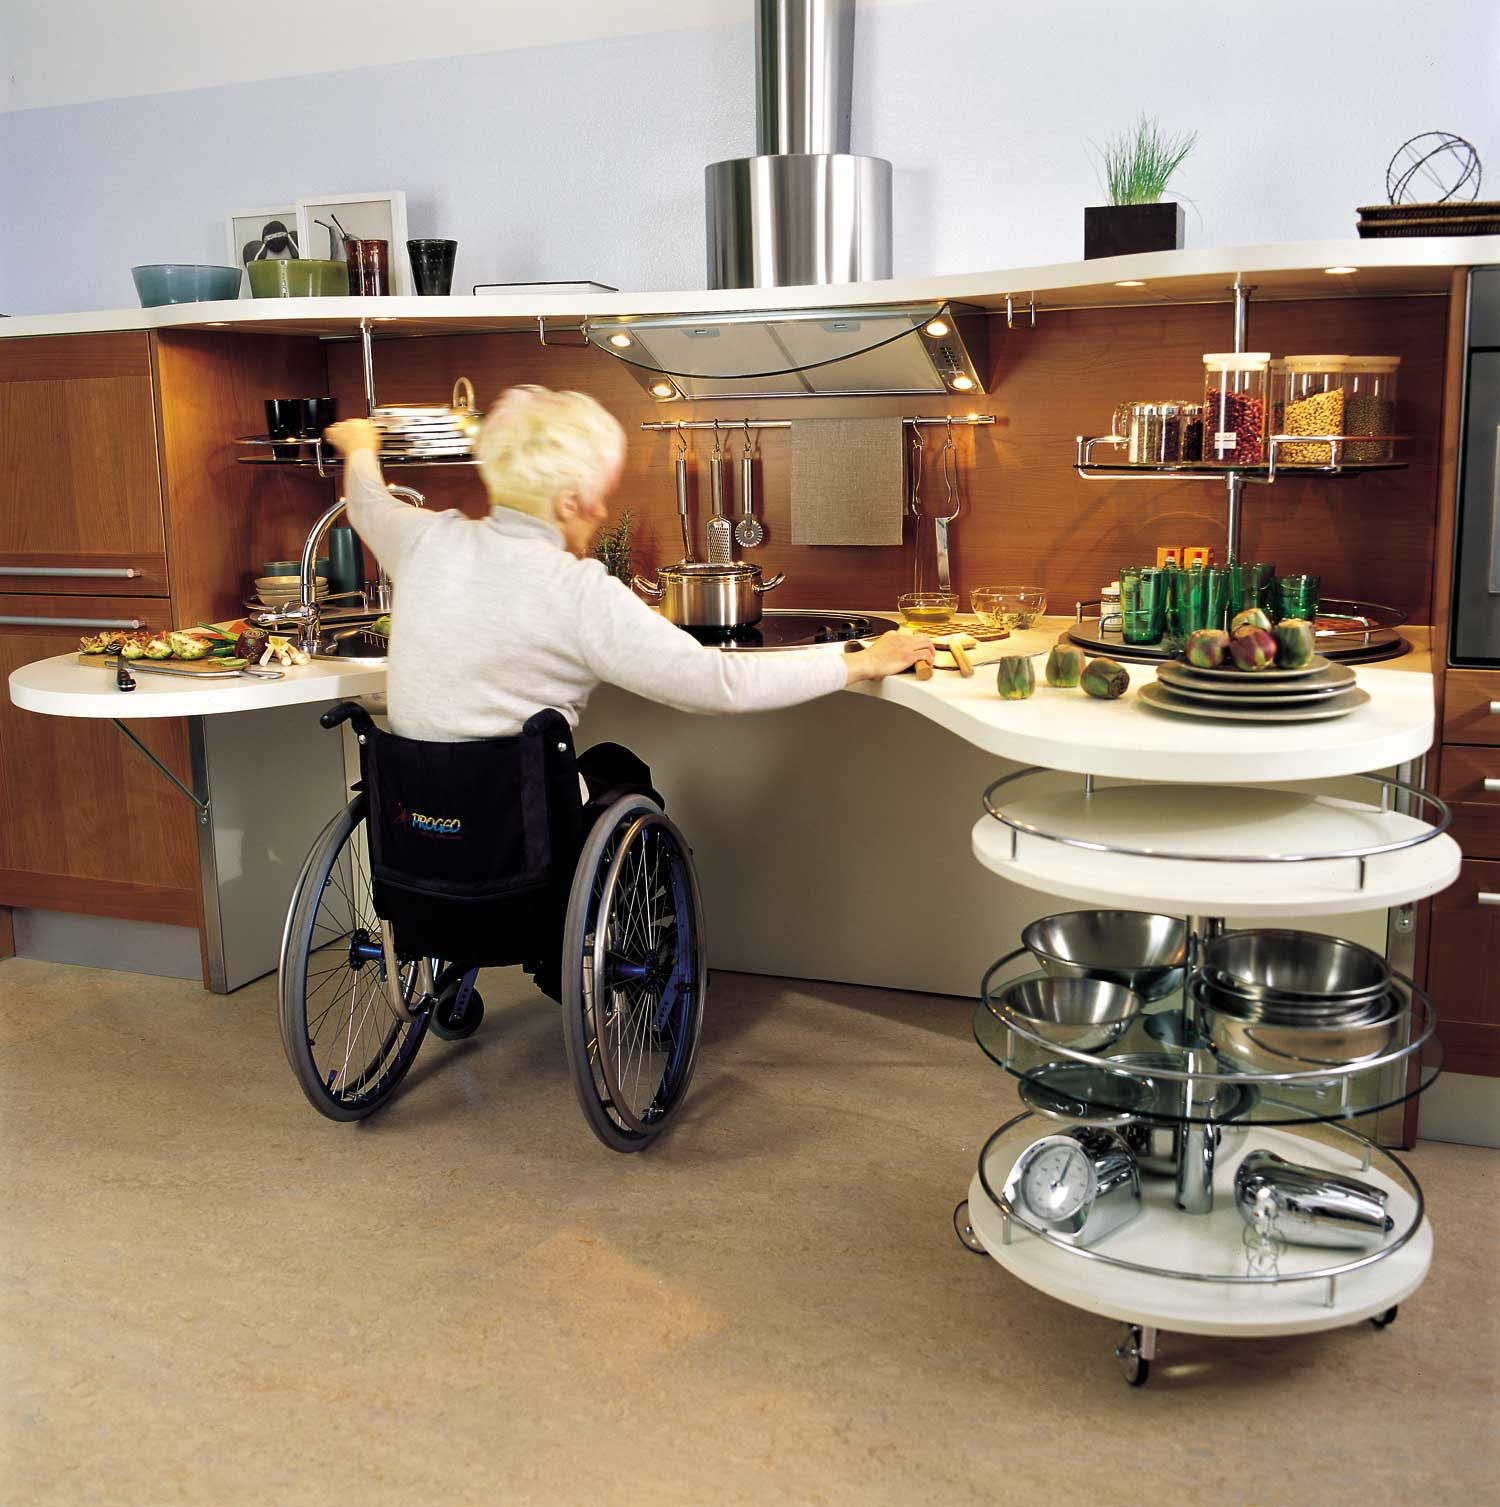 simple sleek kitchen design for wheelchair users